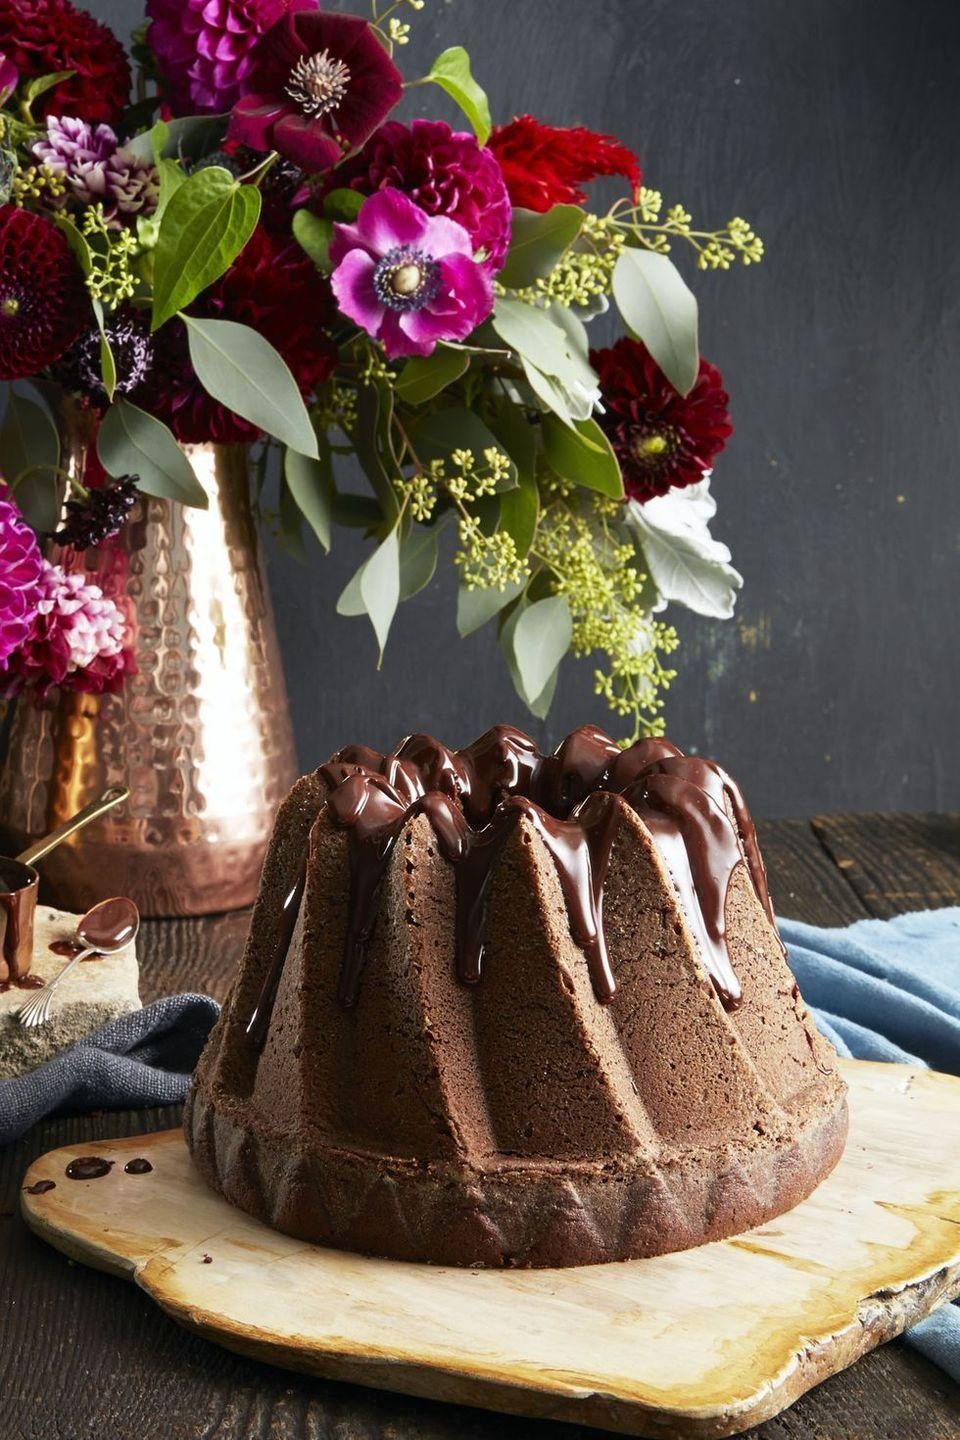 """<p>We dressed up a classic dessert with a decent dose of coffee and buttermilk to make the cake extra moist.</p><p><em><a href=""""https://www.goodhousekeeping.com/food-recipes/dessert/a35180/double-chocolate-bundt/"""" rel=""""nofollow noopener"""" target=""""_blank"""" data-ylk=""""slk:Get the recipe for Double Chocolate Bundt Cake »"""" class=""""link rapid-noclick-resp"""">Get the recipe for Double Chocolate Bundt Cake »</a></em></p>"""